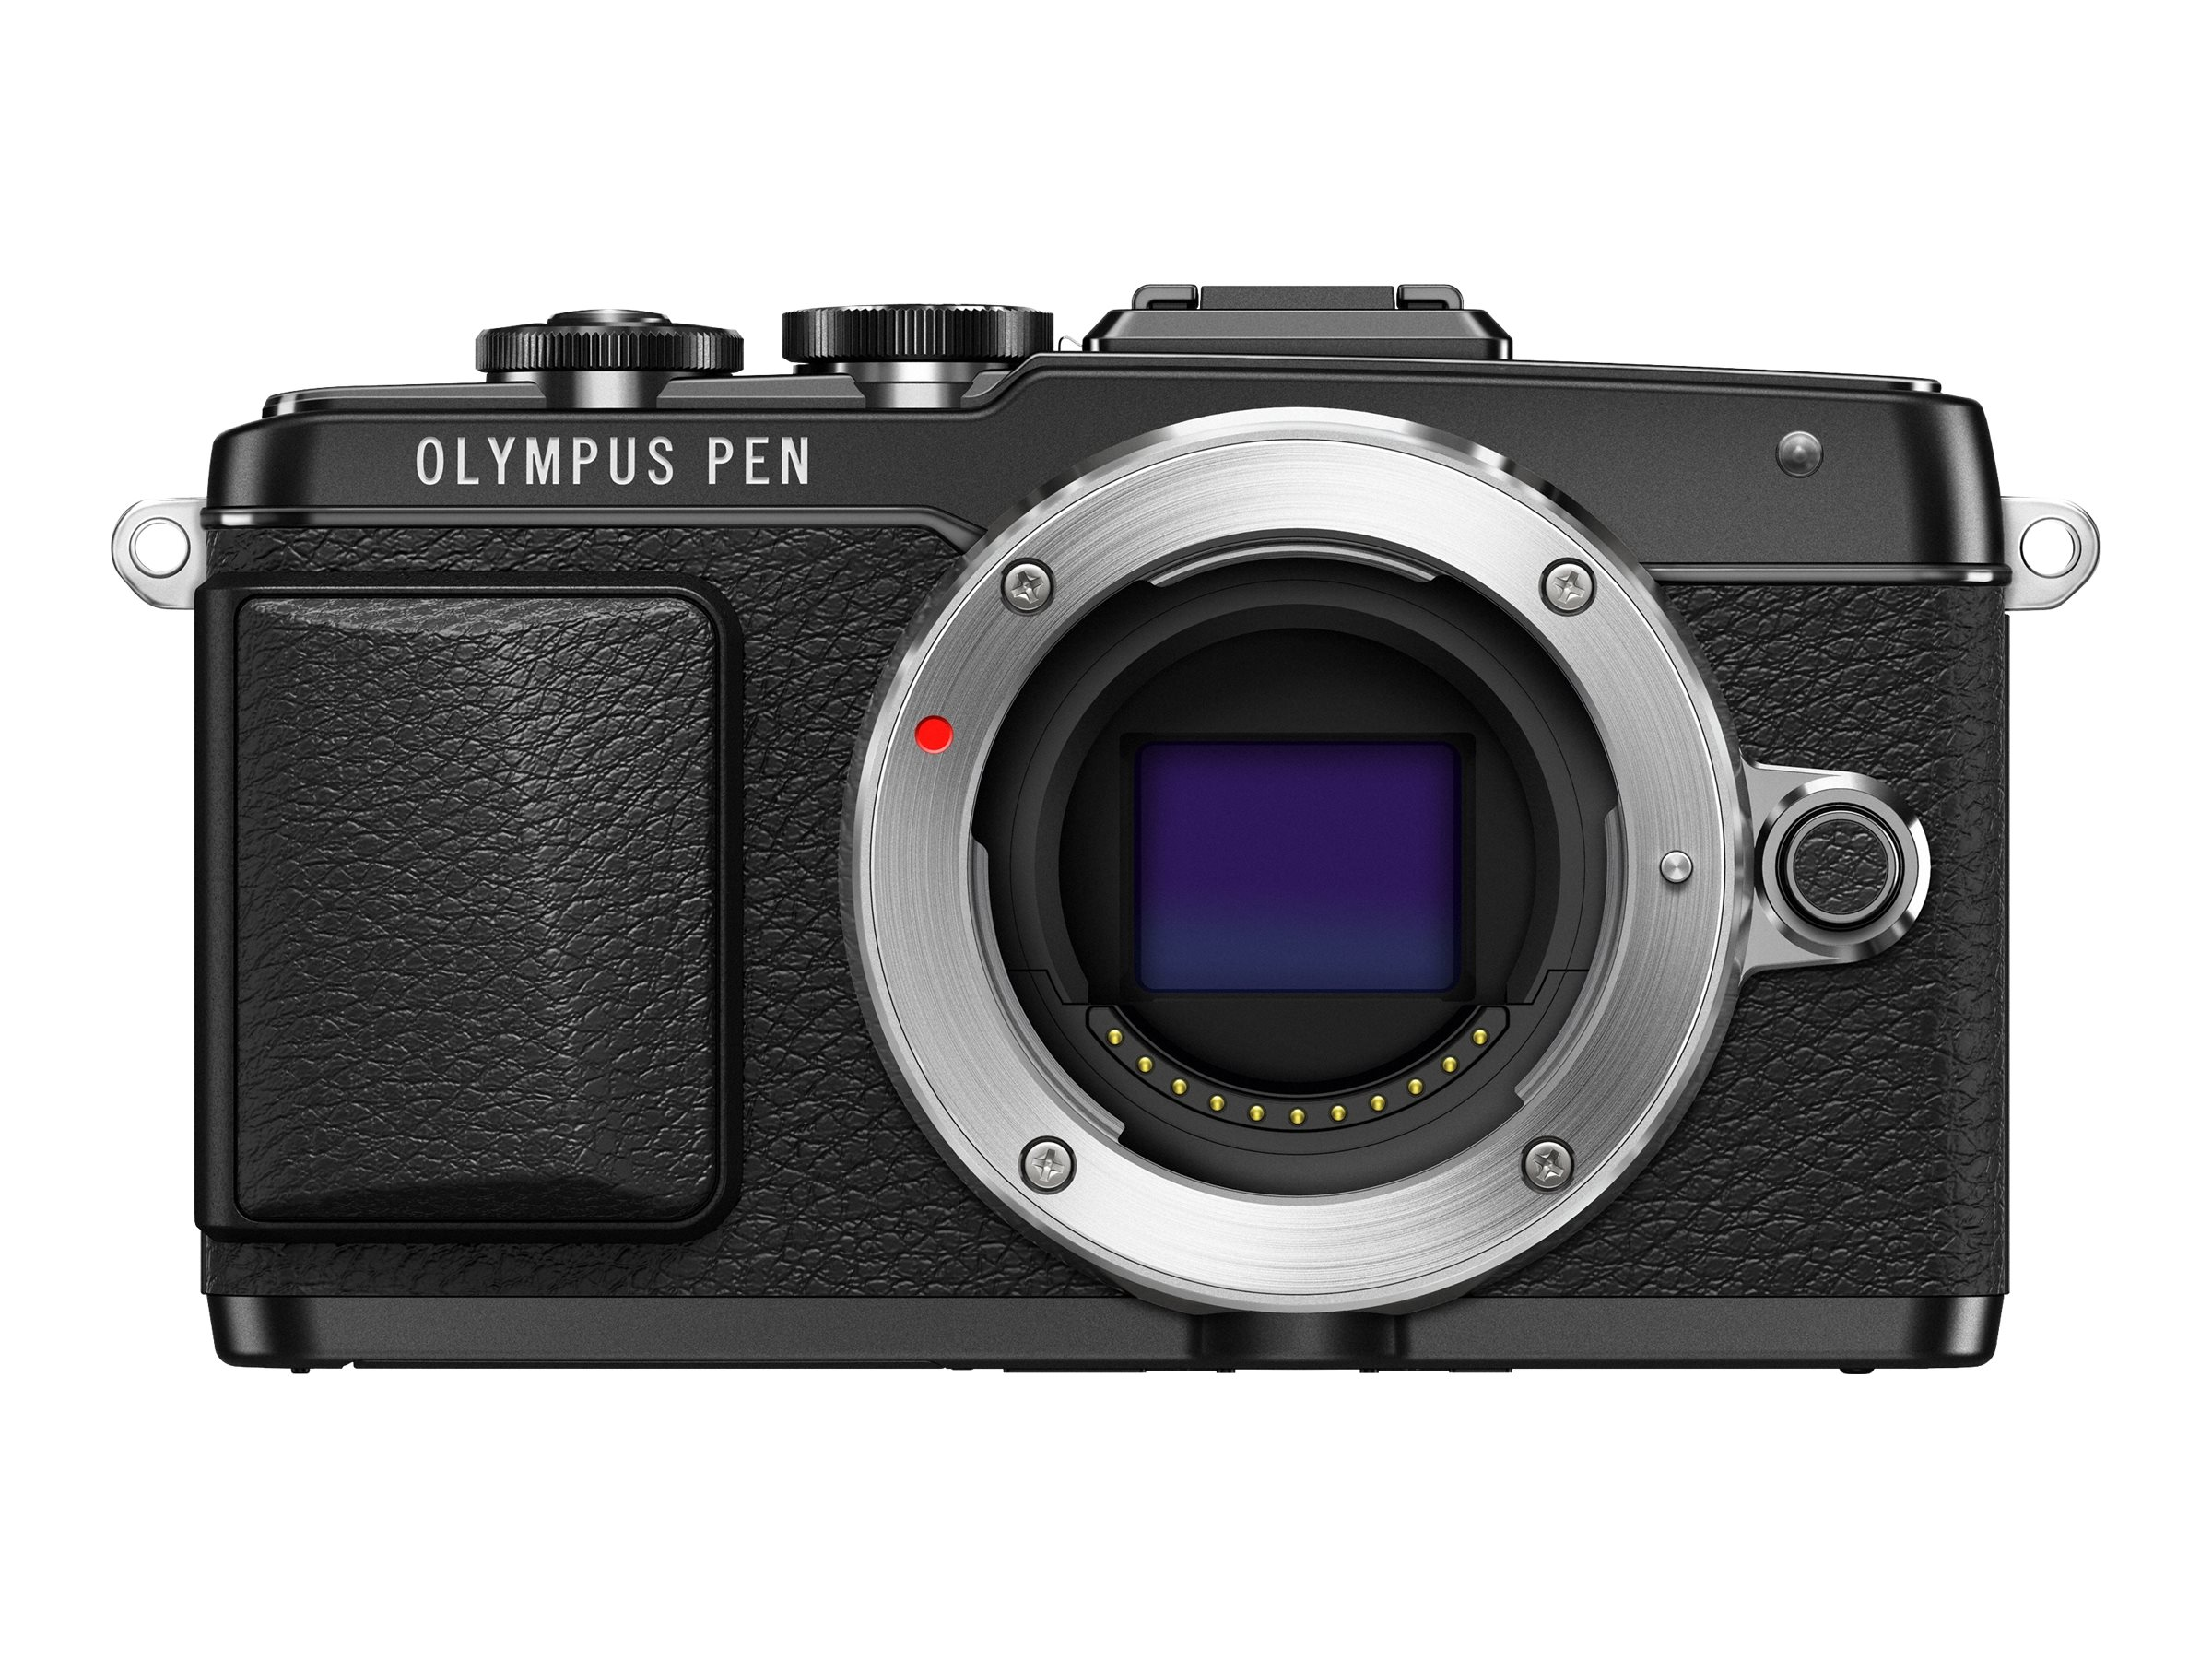 Olympus PEN E-PL7 Mirrorless Micro Four Thirds Digital Camera, Black (Body Only), V205070BU000